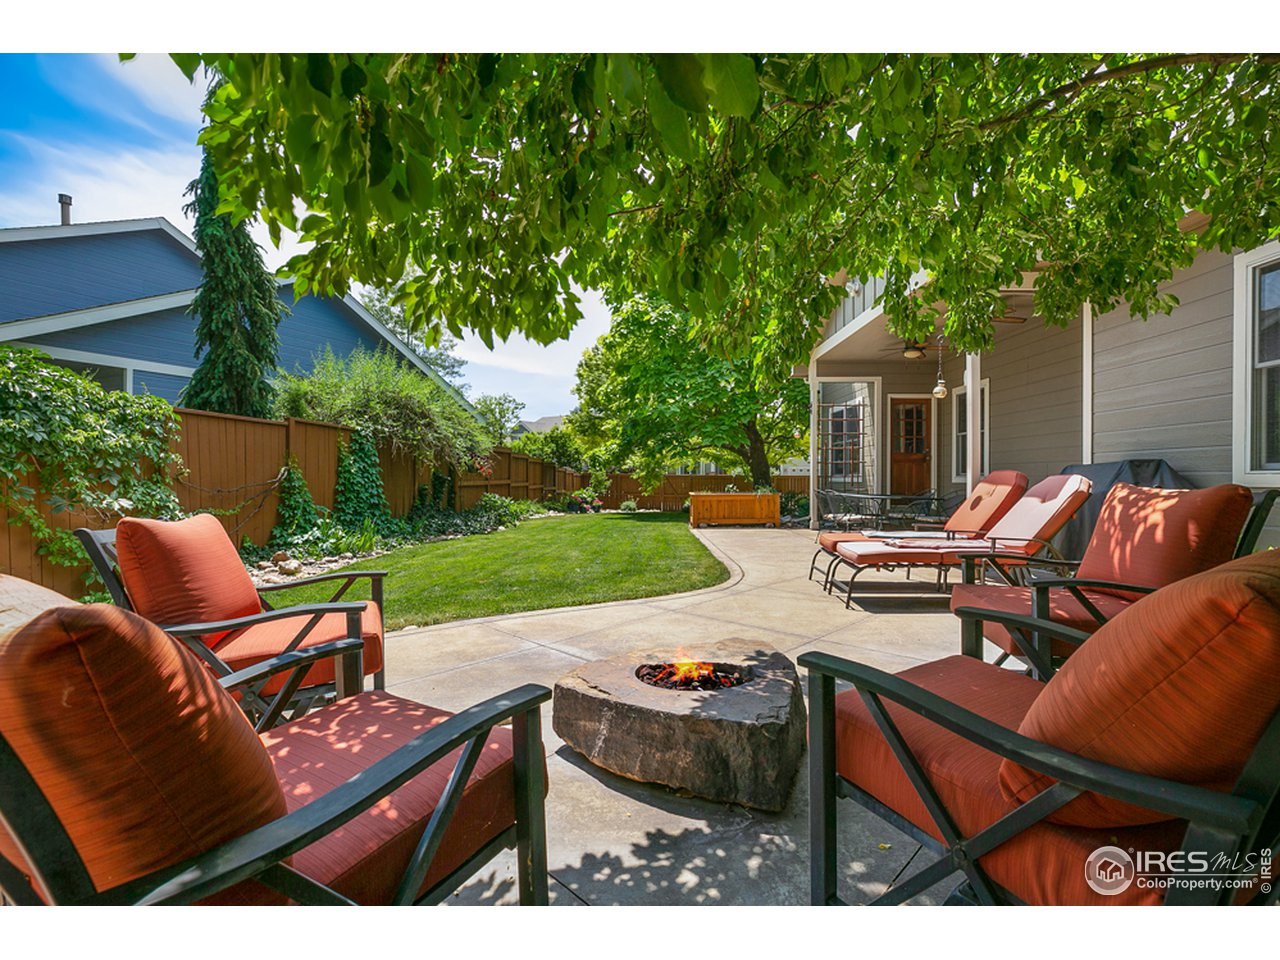 Enjoy summer and fall nights with the built in gas fireplace and stamped concrete patio